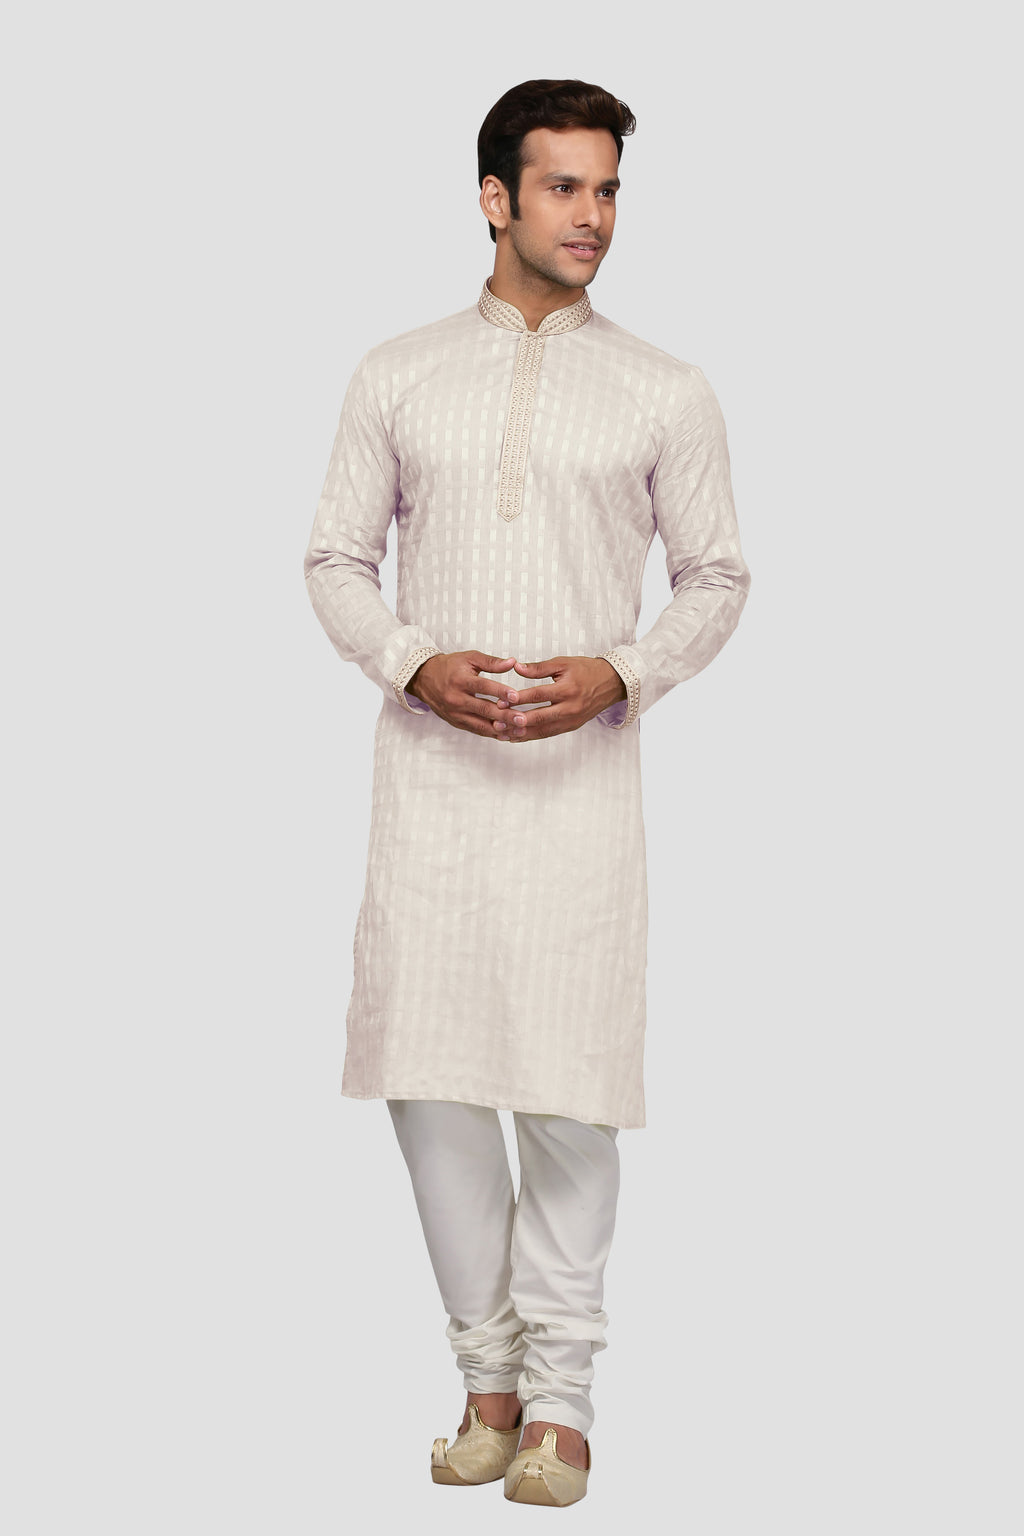 Ethniz - Men's Offwhite self Check Print Kurta with Churidar